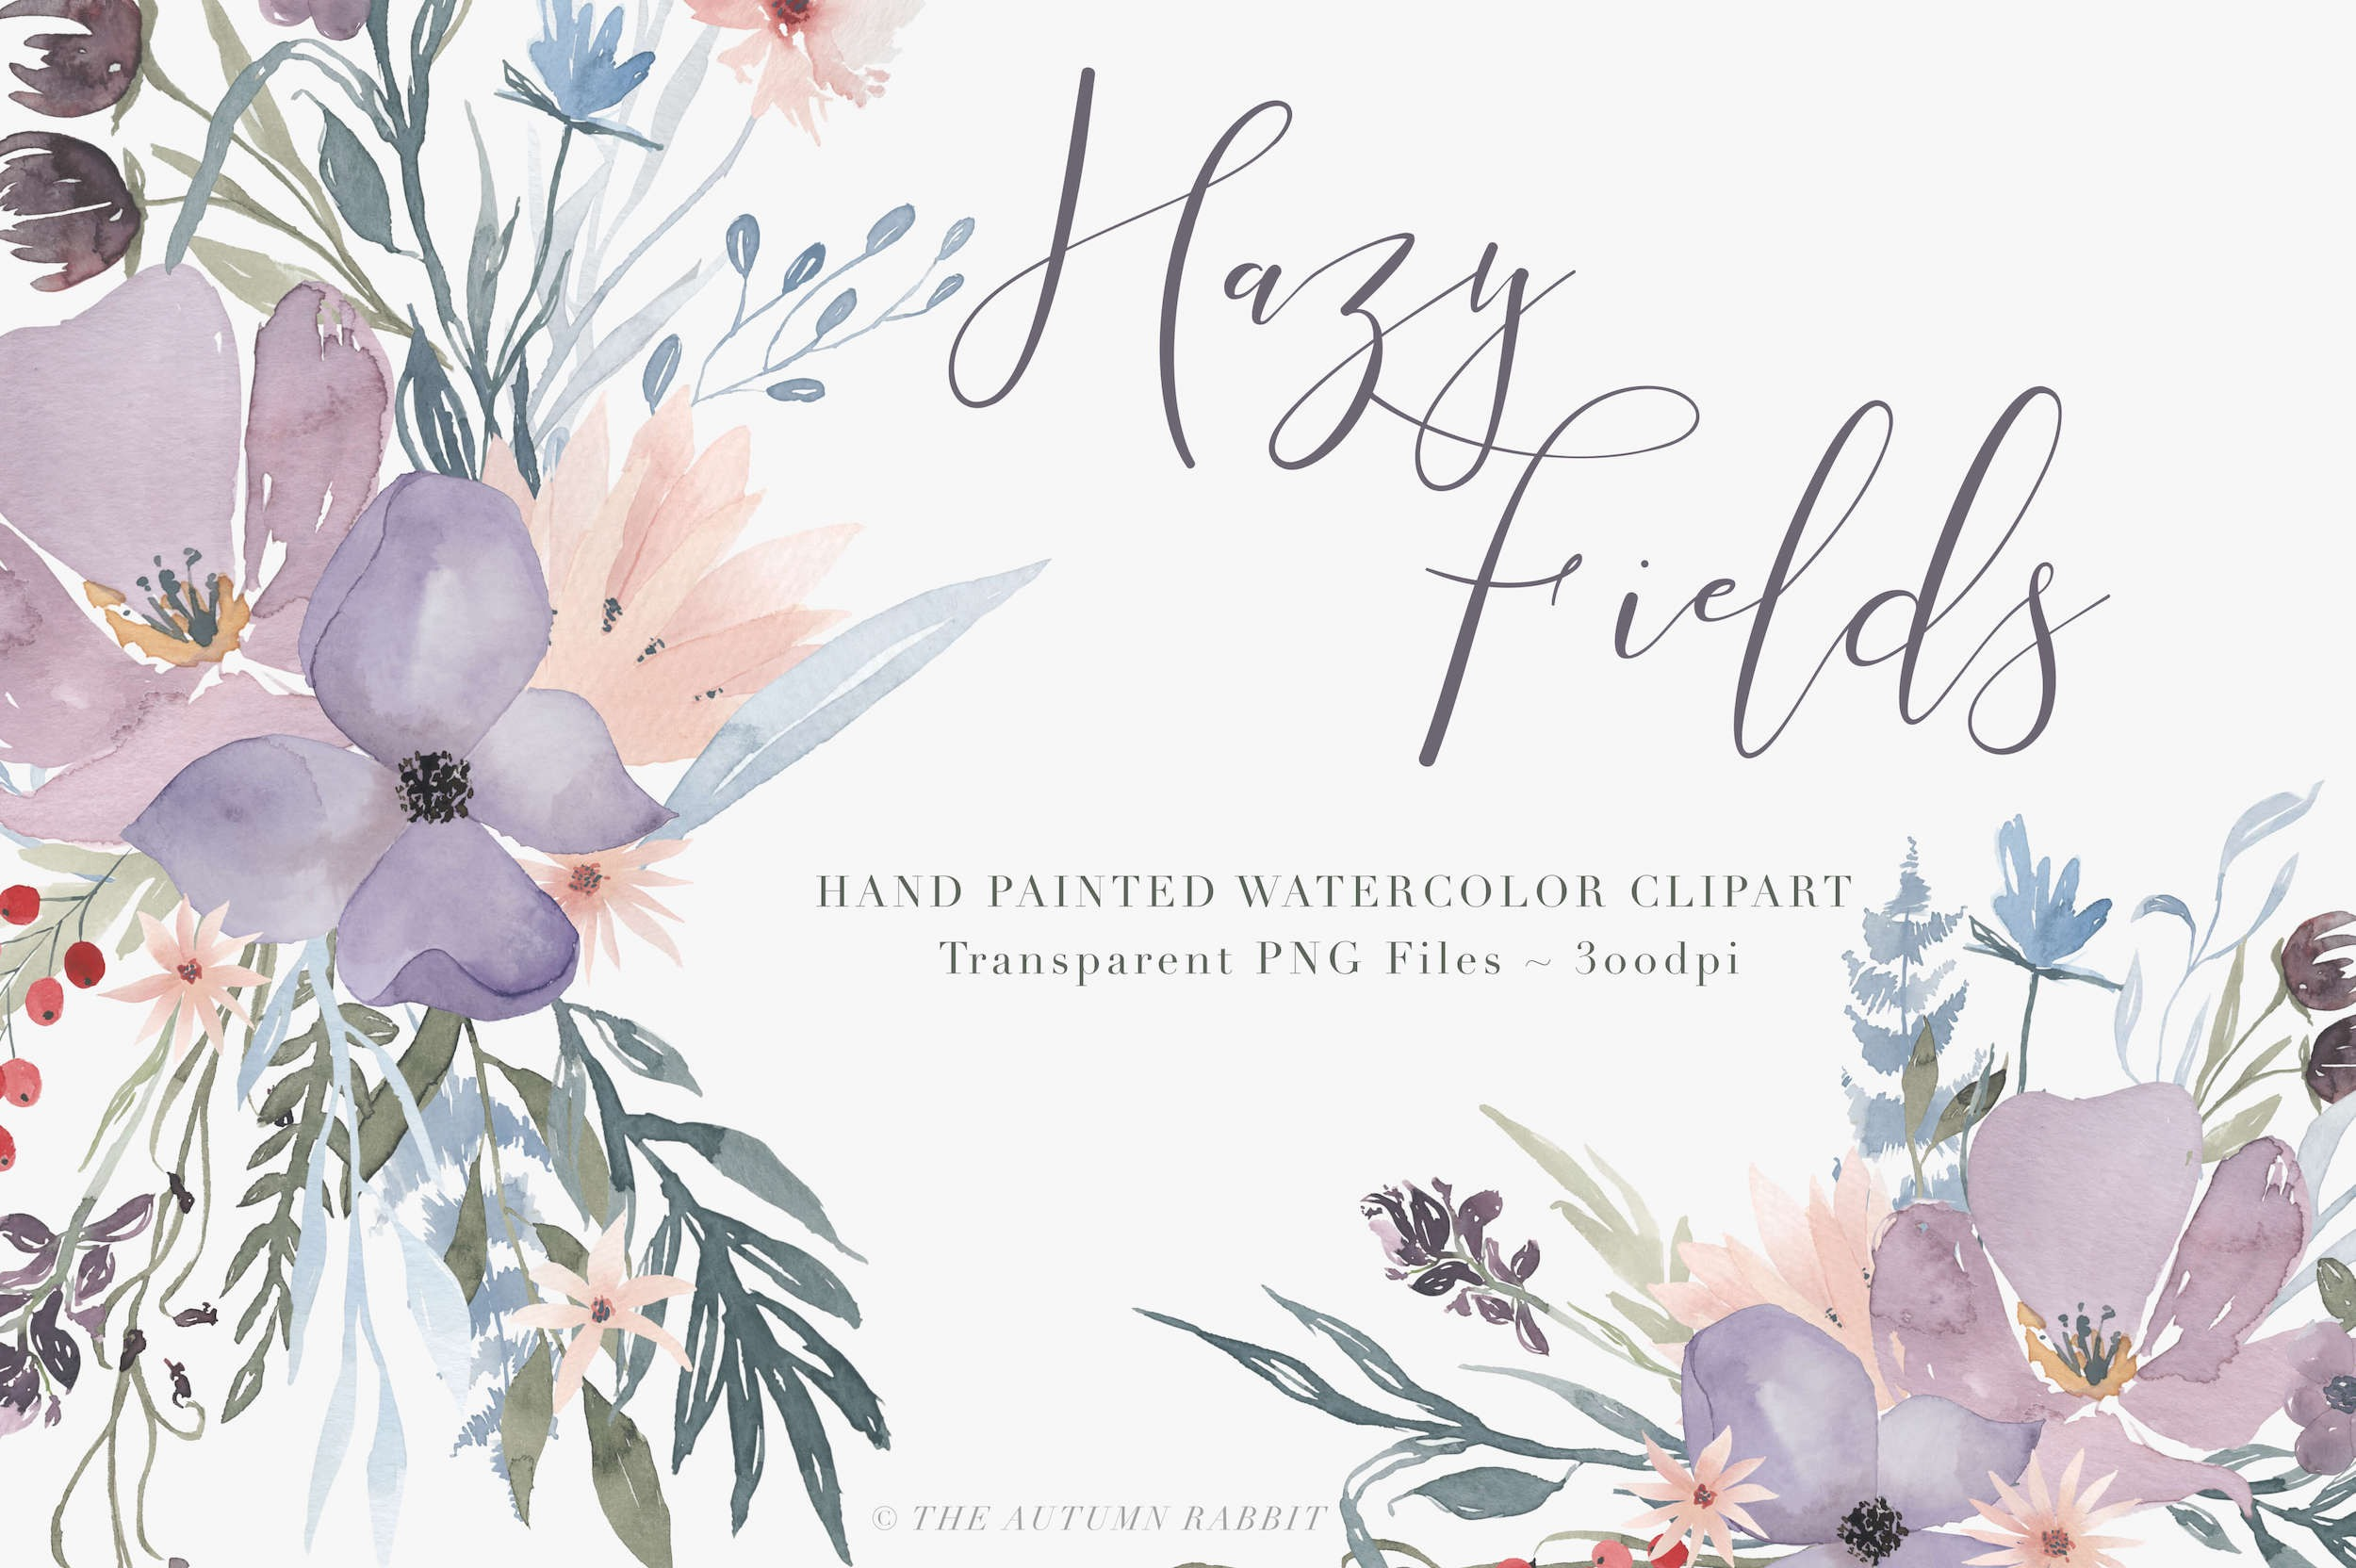 Hand painted watercolor clipart black and white download Hazy Fields – Watercolor Clipart Set black and white download